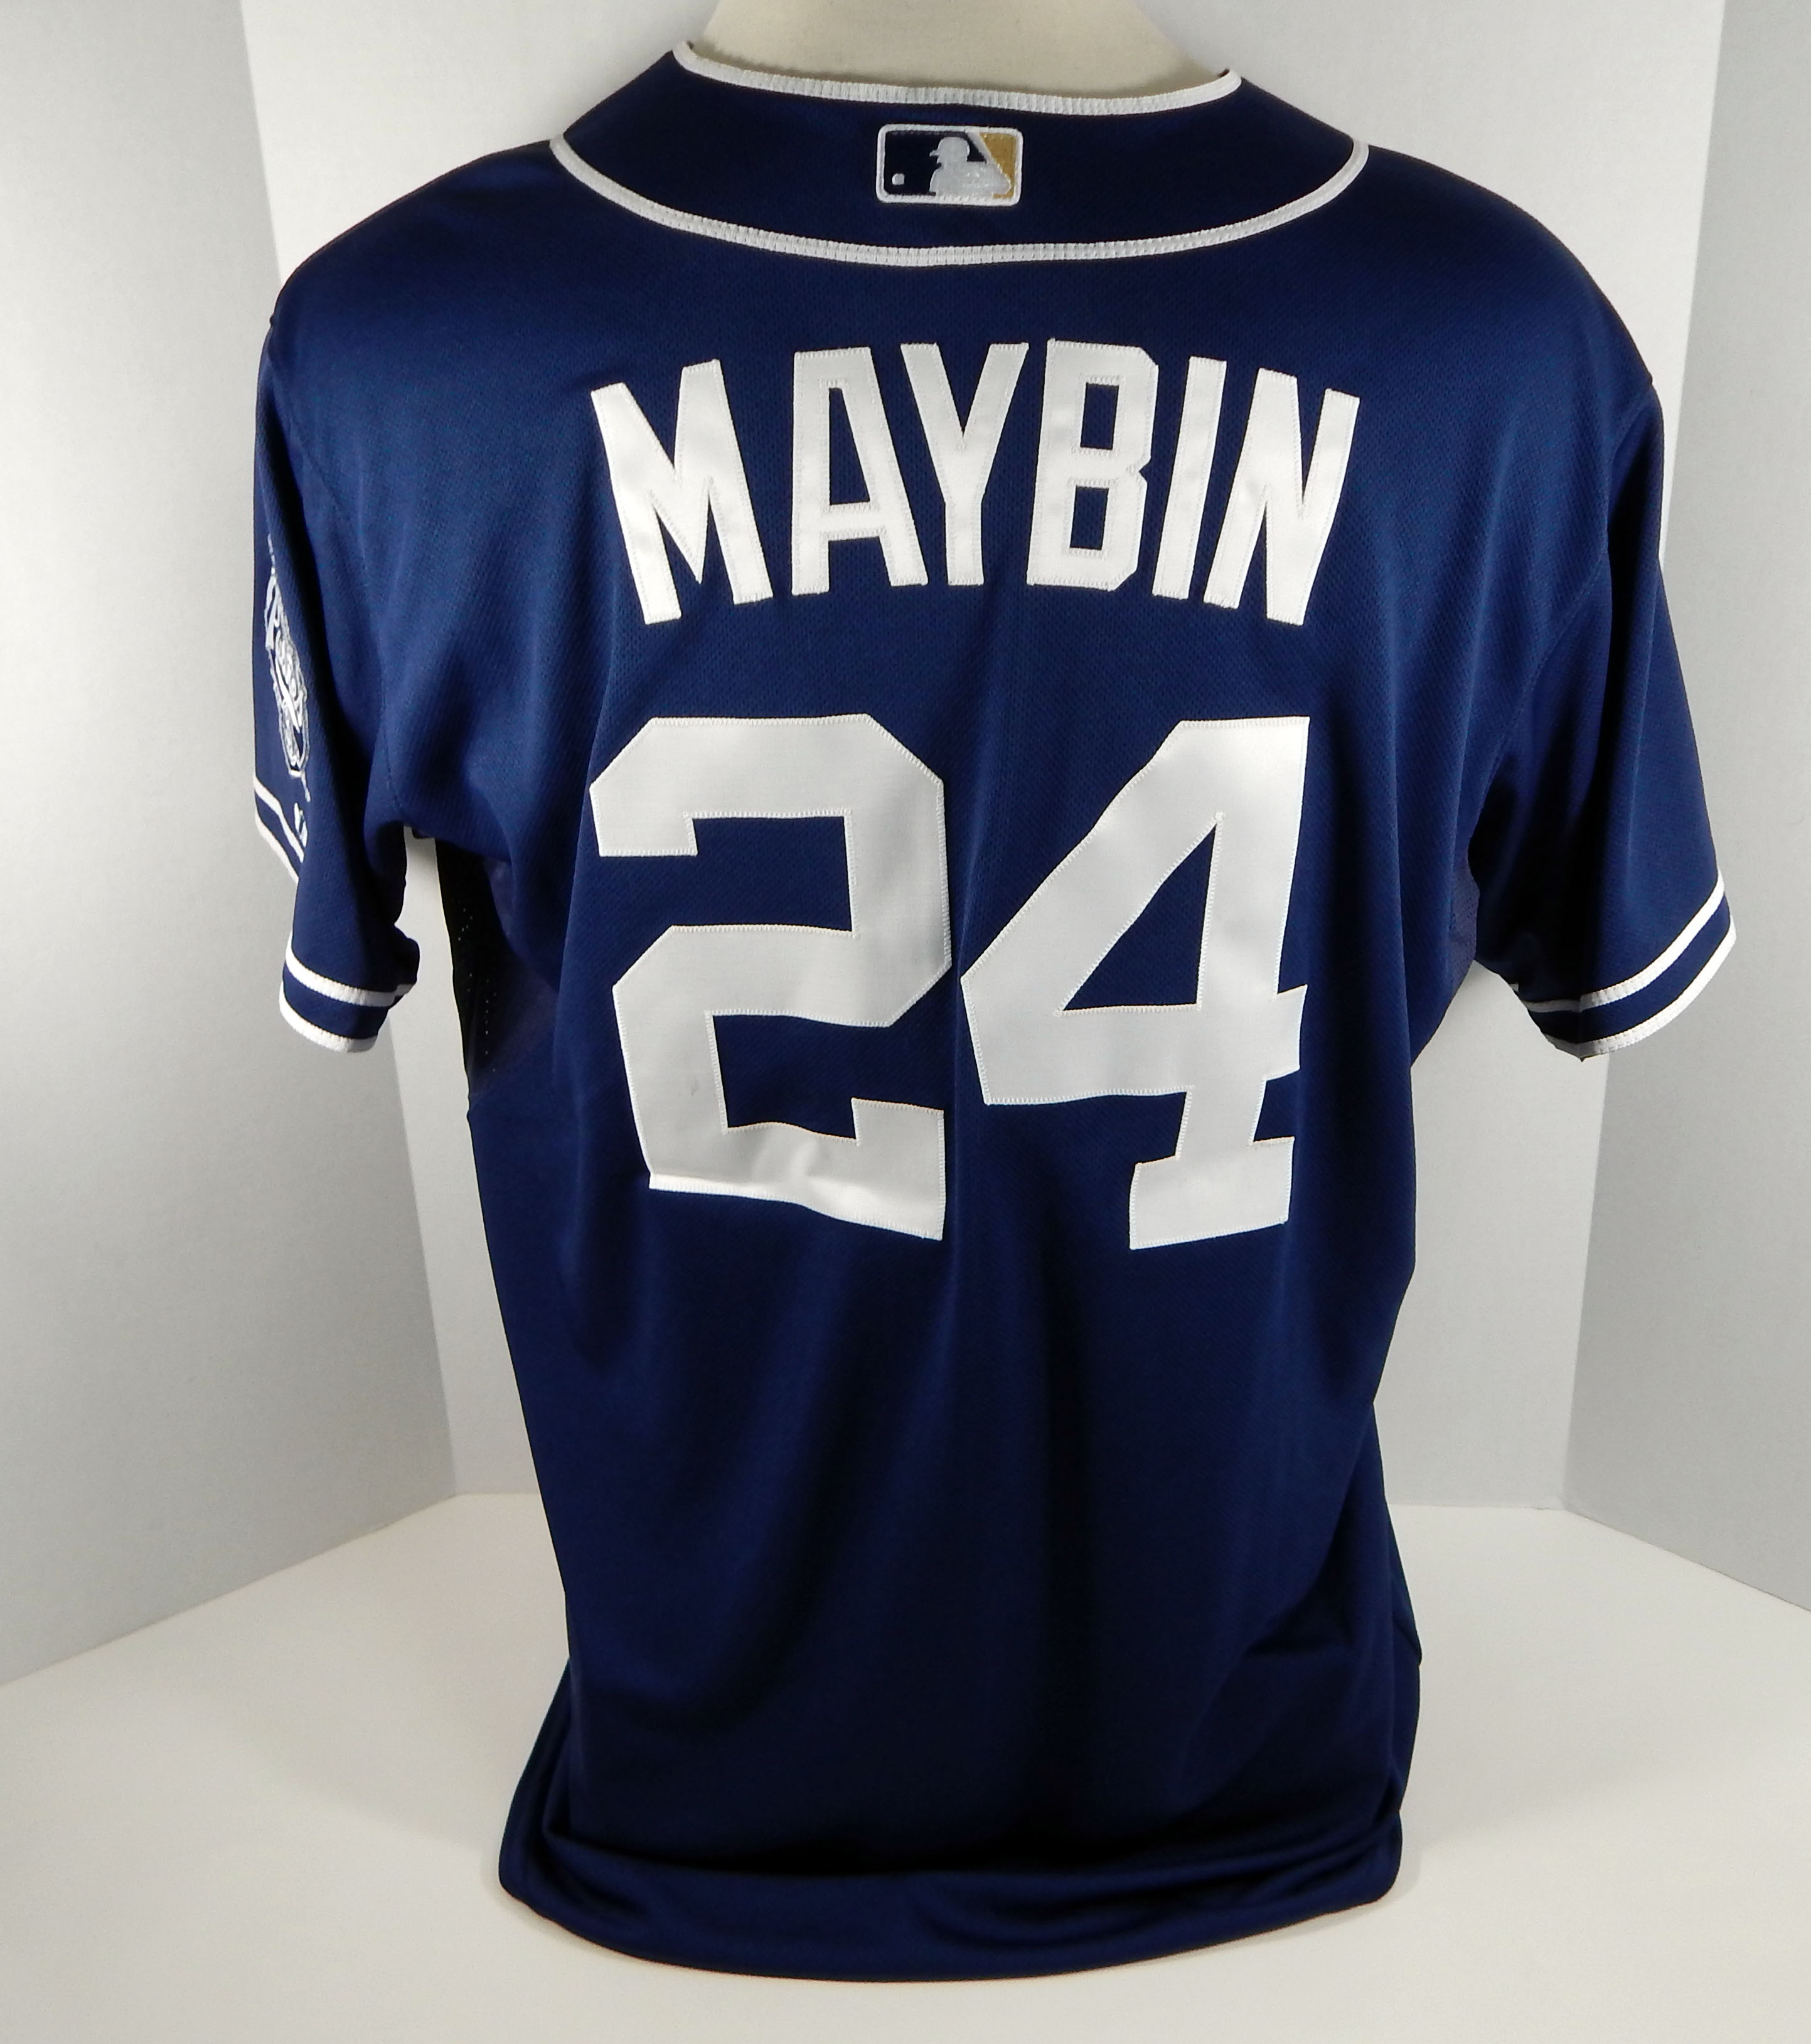 quality design 04551 848b0 Details about 2012 San Diego Padres Cameron Maybin #24 Game Issued Navy  Jersey